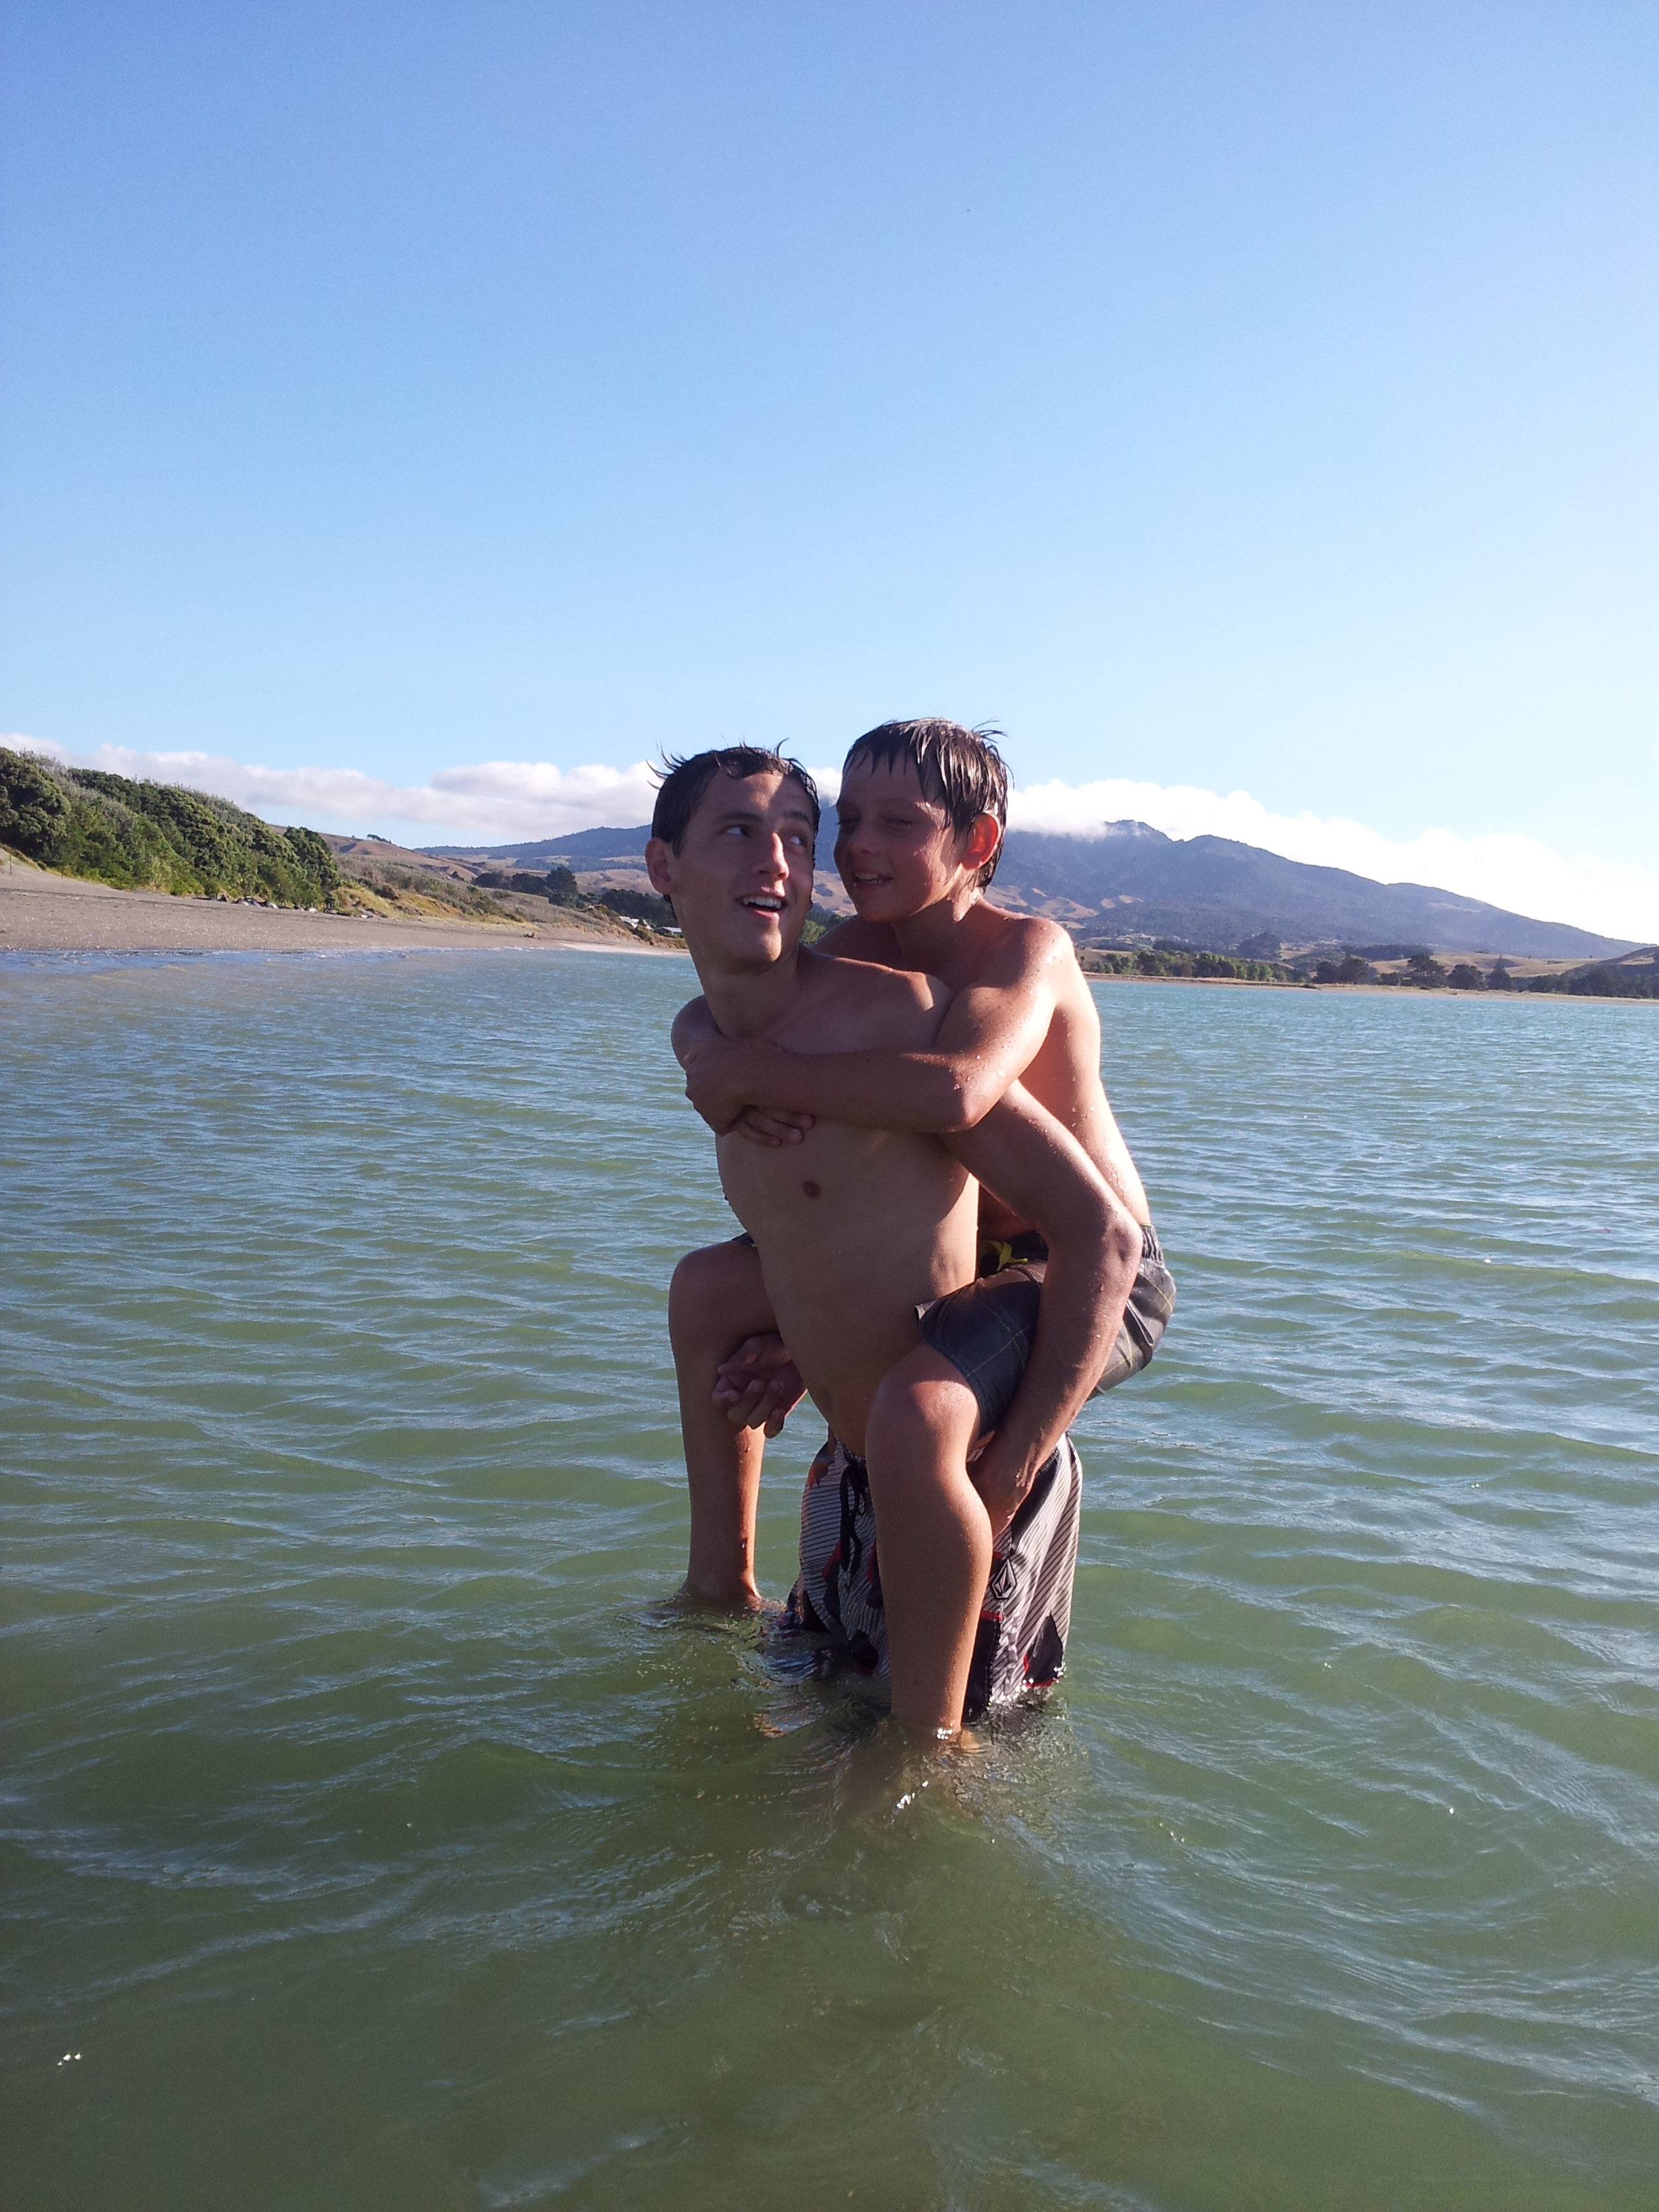 Boys in ocean with mountain in background